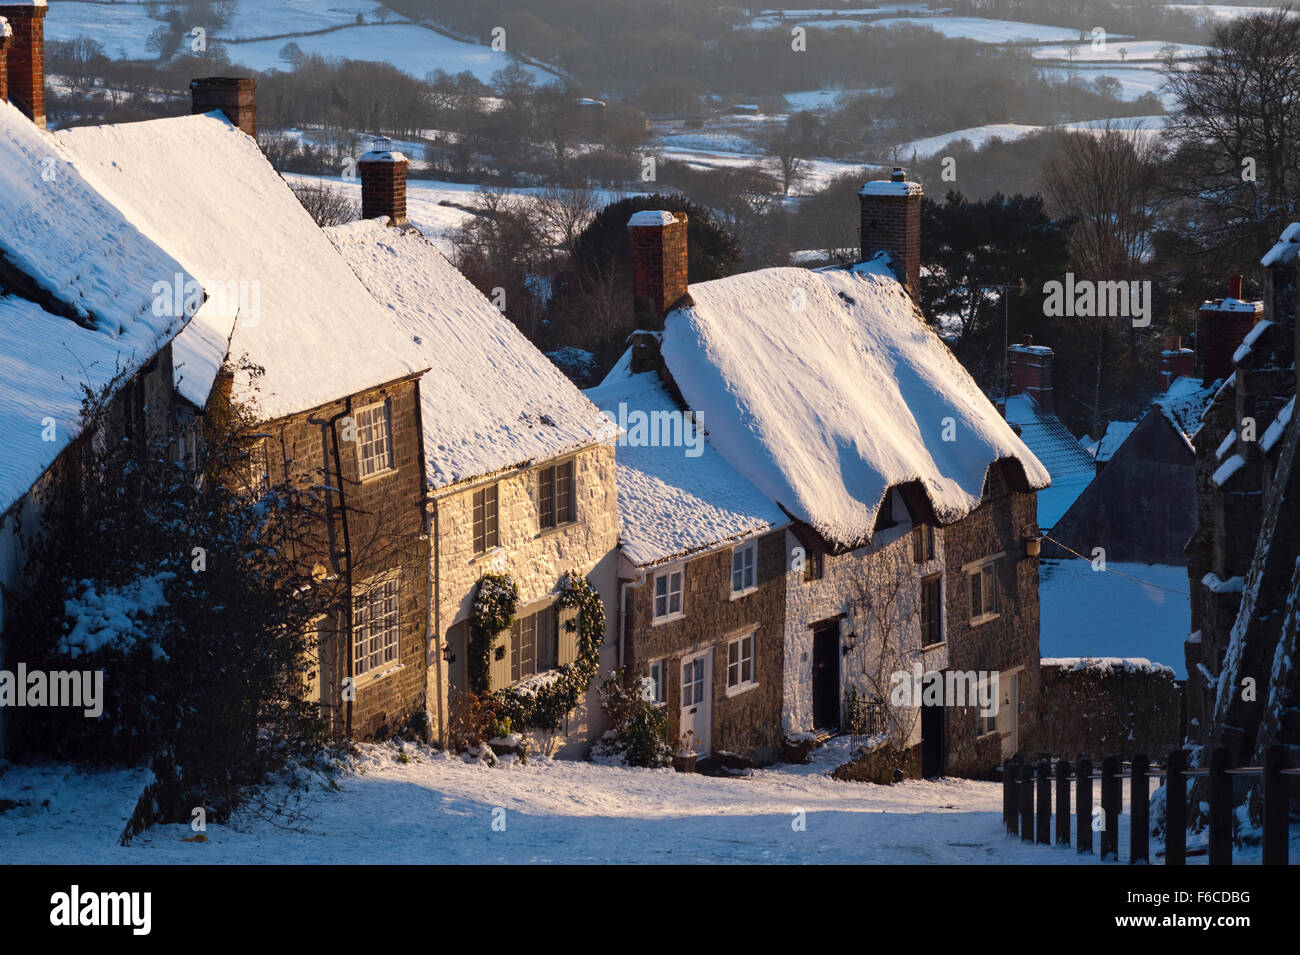 View of Gold Hill at Shaftesbury in Dorset in the late afternoon, coated in snow during a prolonged spell of cold - Stock Image